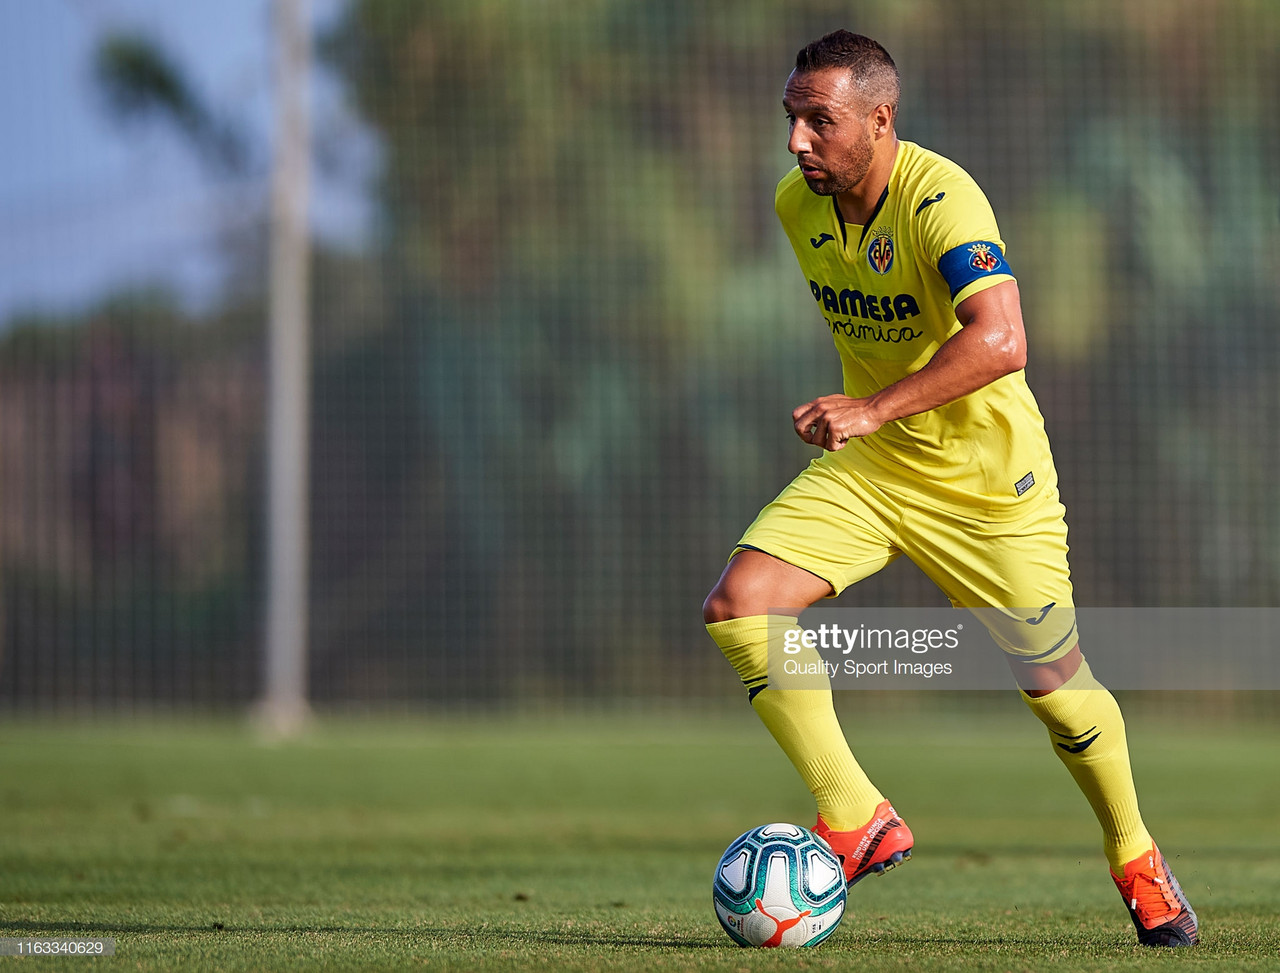 Villarreal Season Preview: The Yellow Submarine hope to kick on after a disappointing 18/19